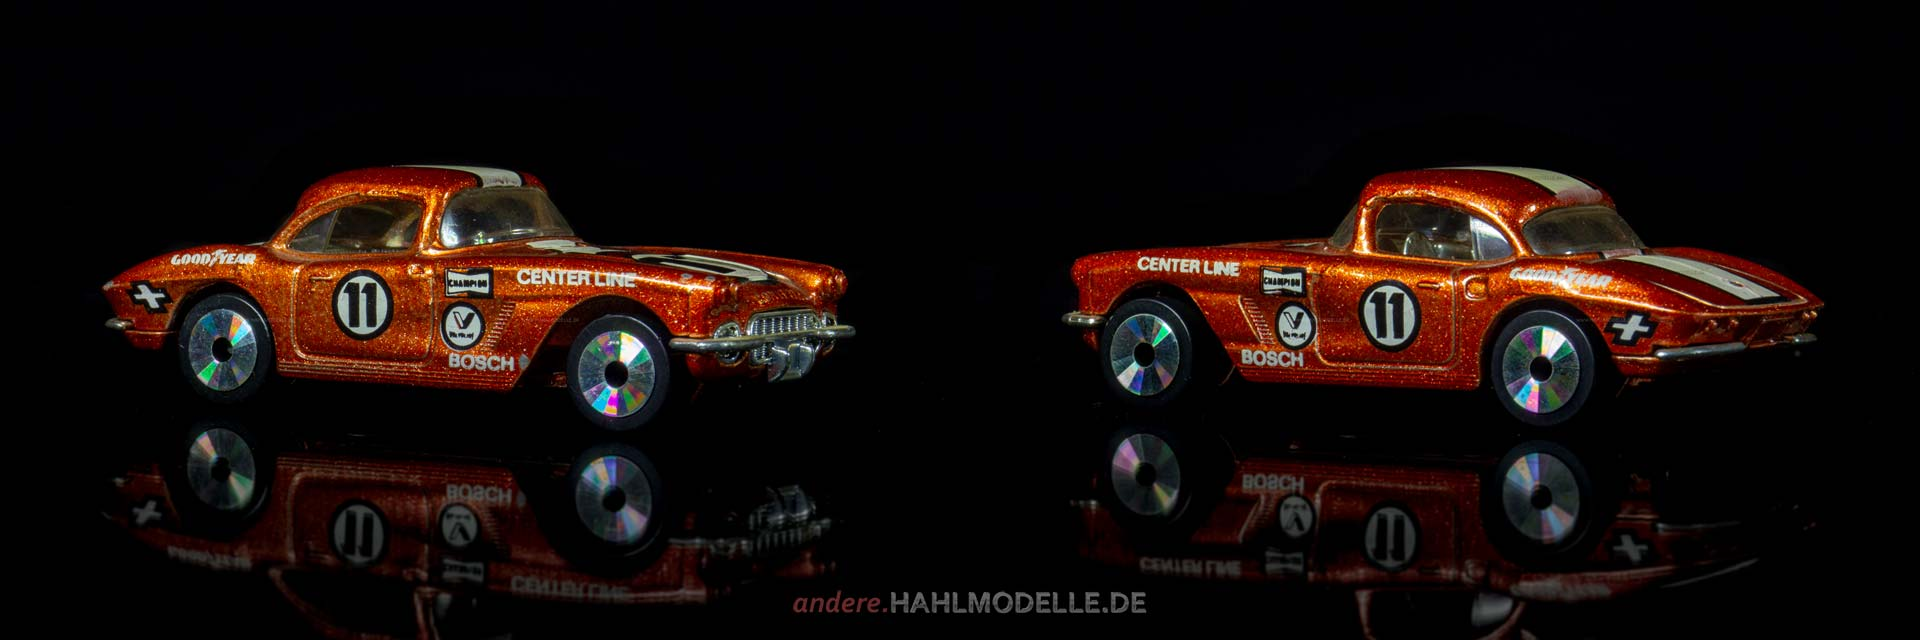 Chevrolet Corvette C1 | Roadster | Matchbox Toys Ltd. | Matchbox Laser Wheels | www.andere.hahlmodelle.de